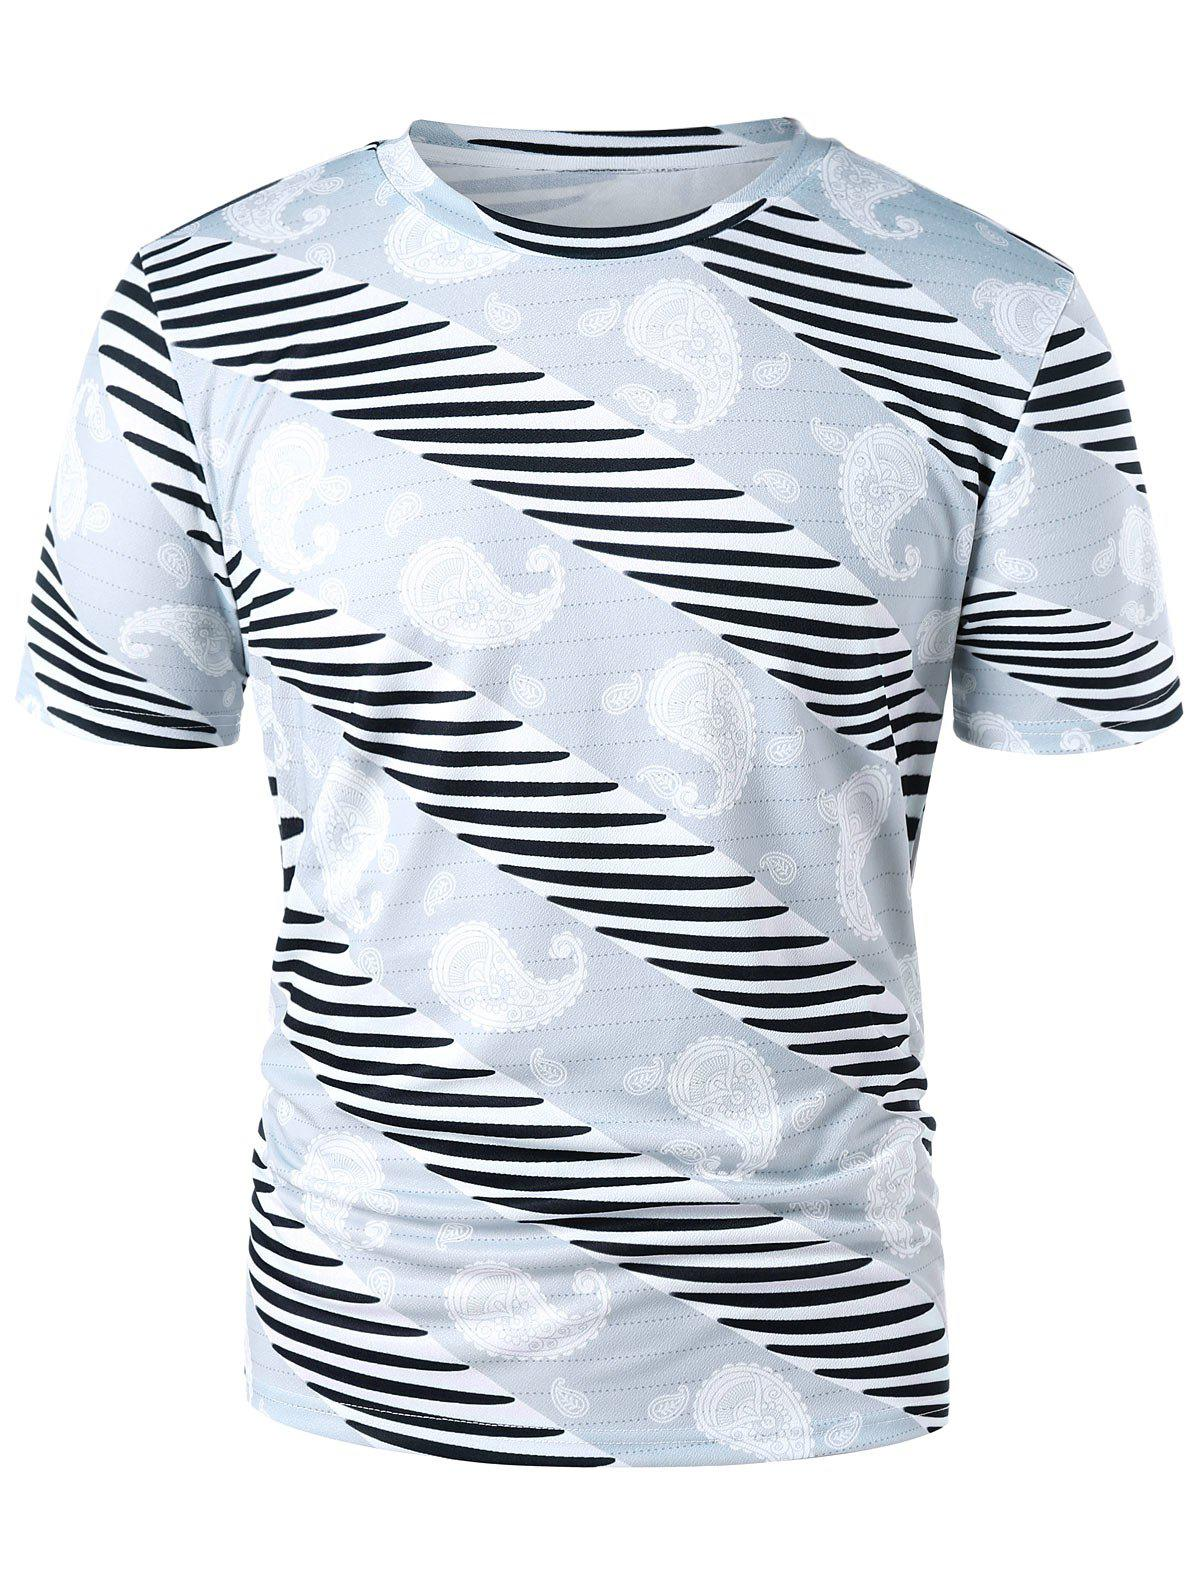 Chic Paisley and Stripe Print Casual T-shirt